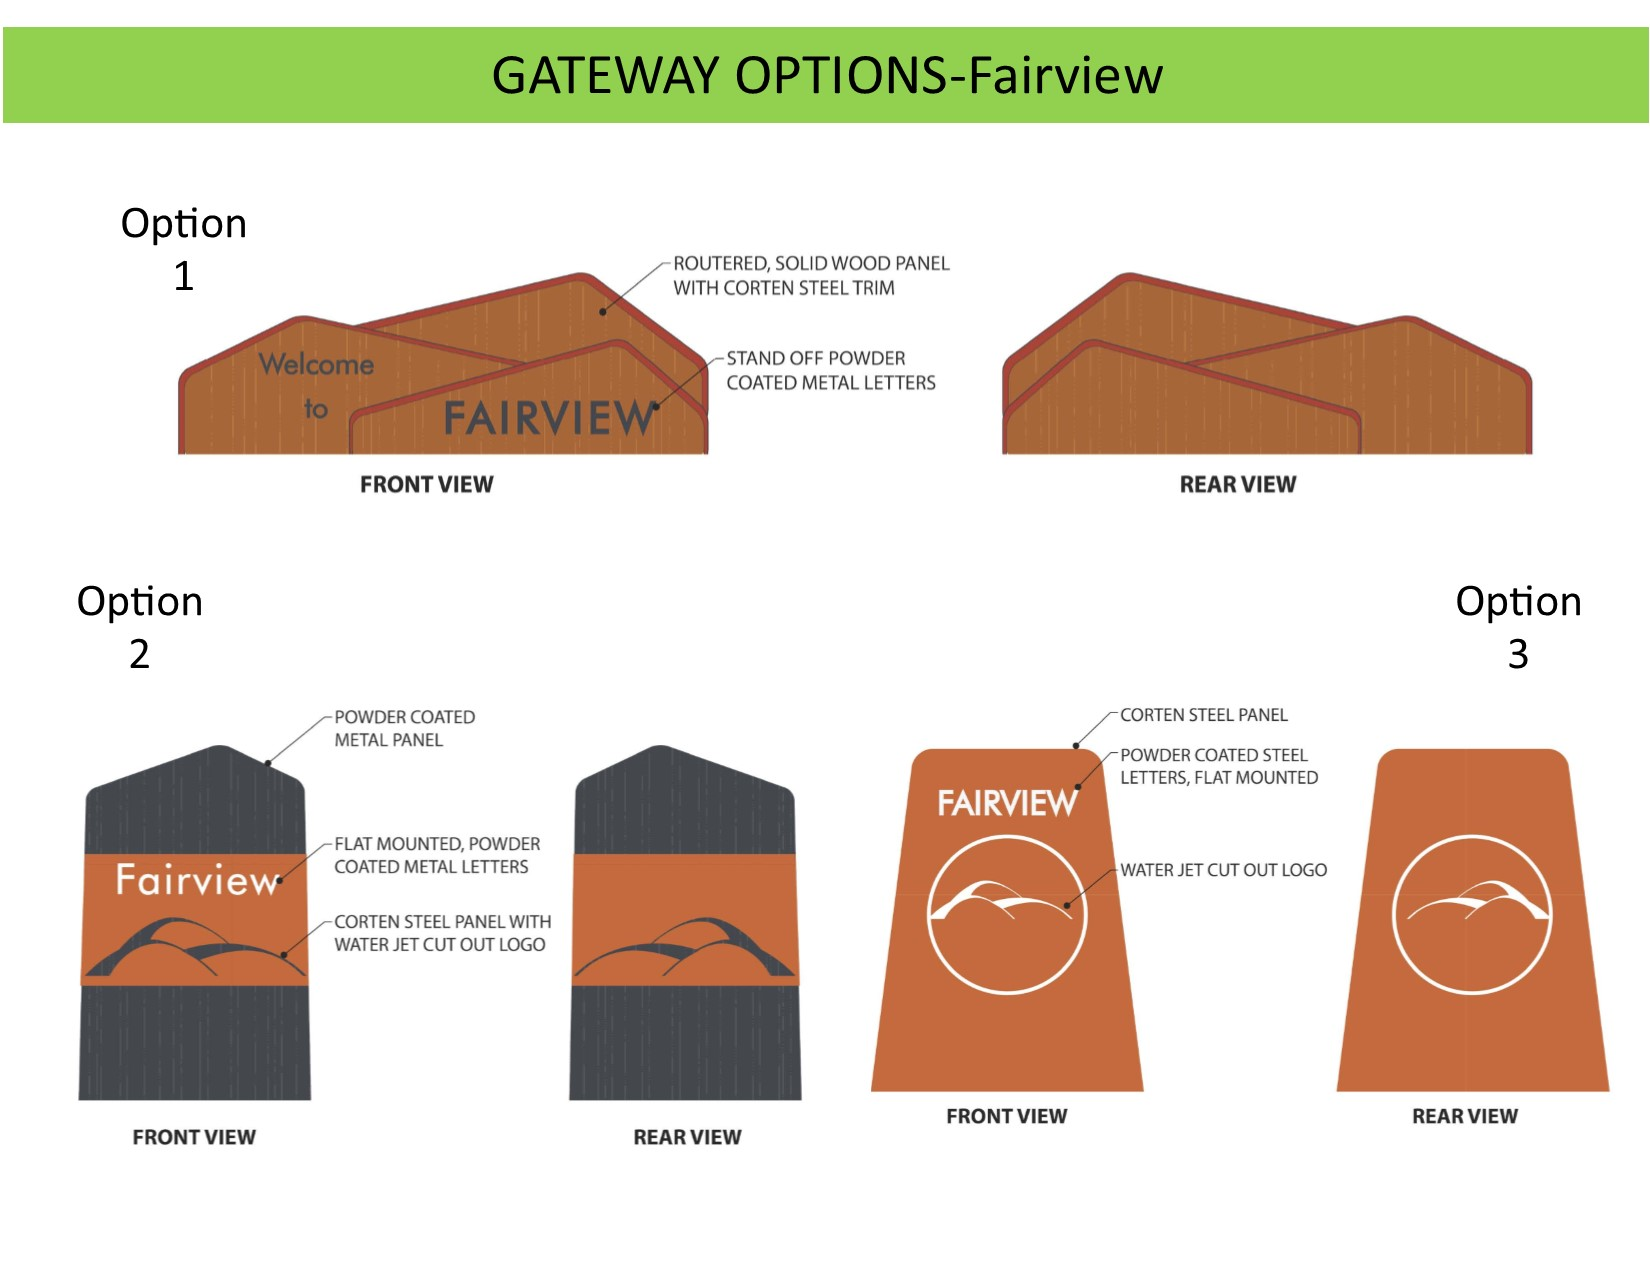 image depicting gateway options fairview